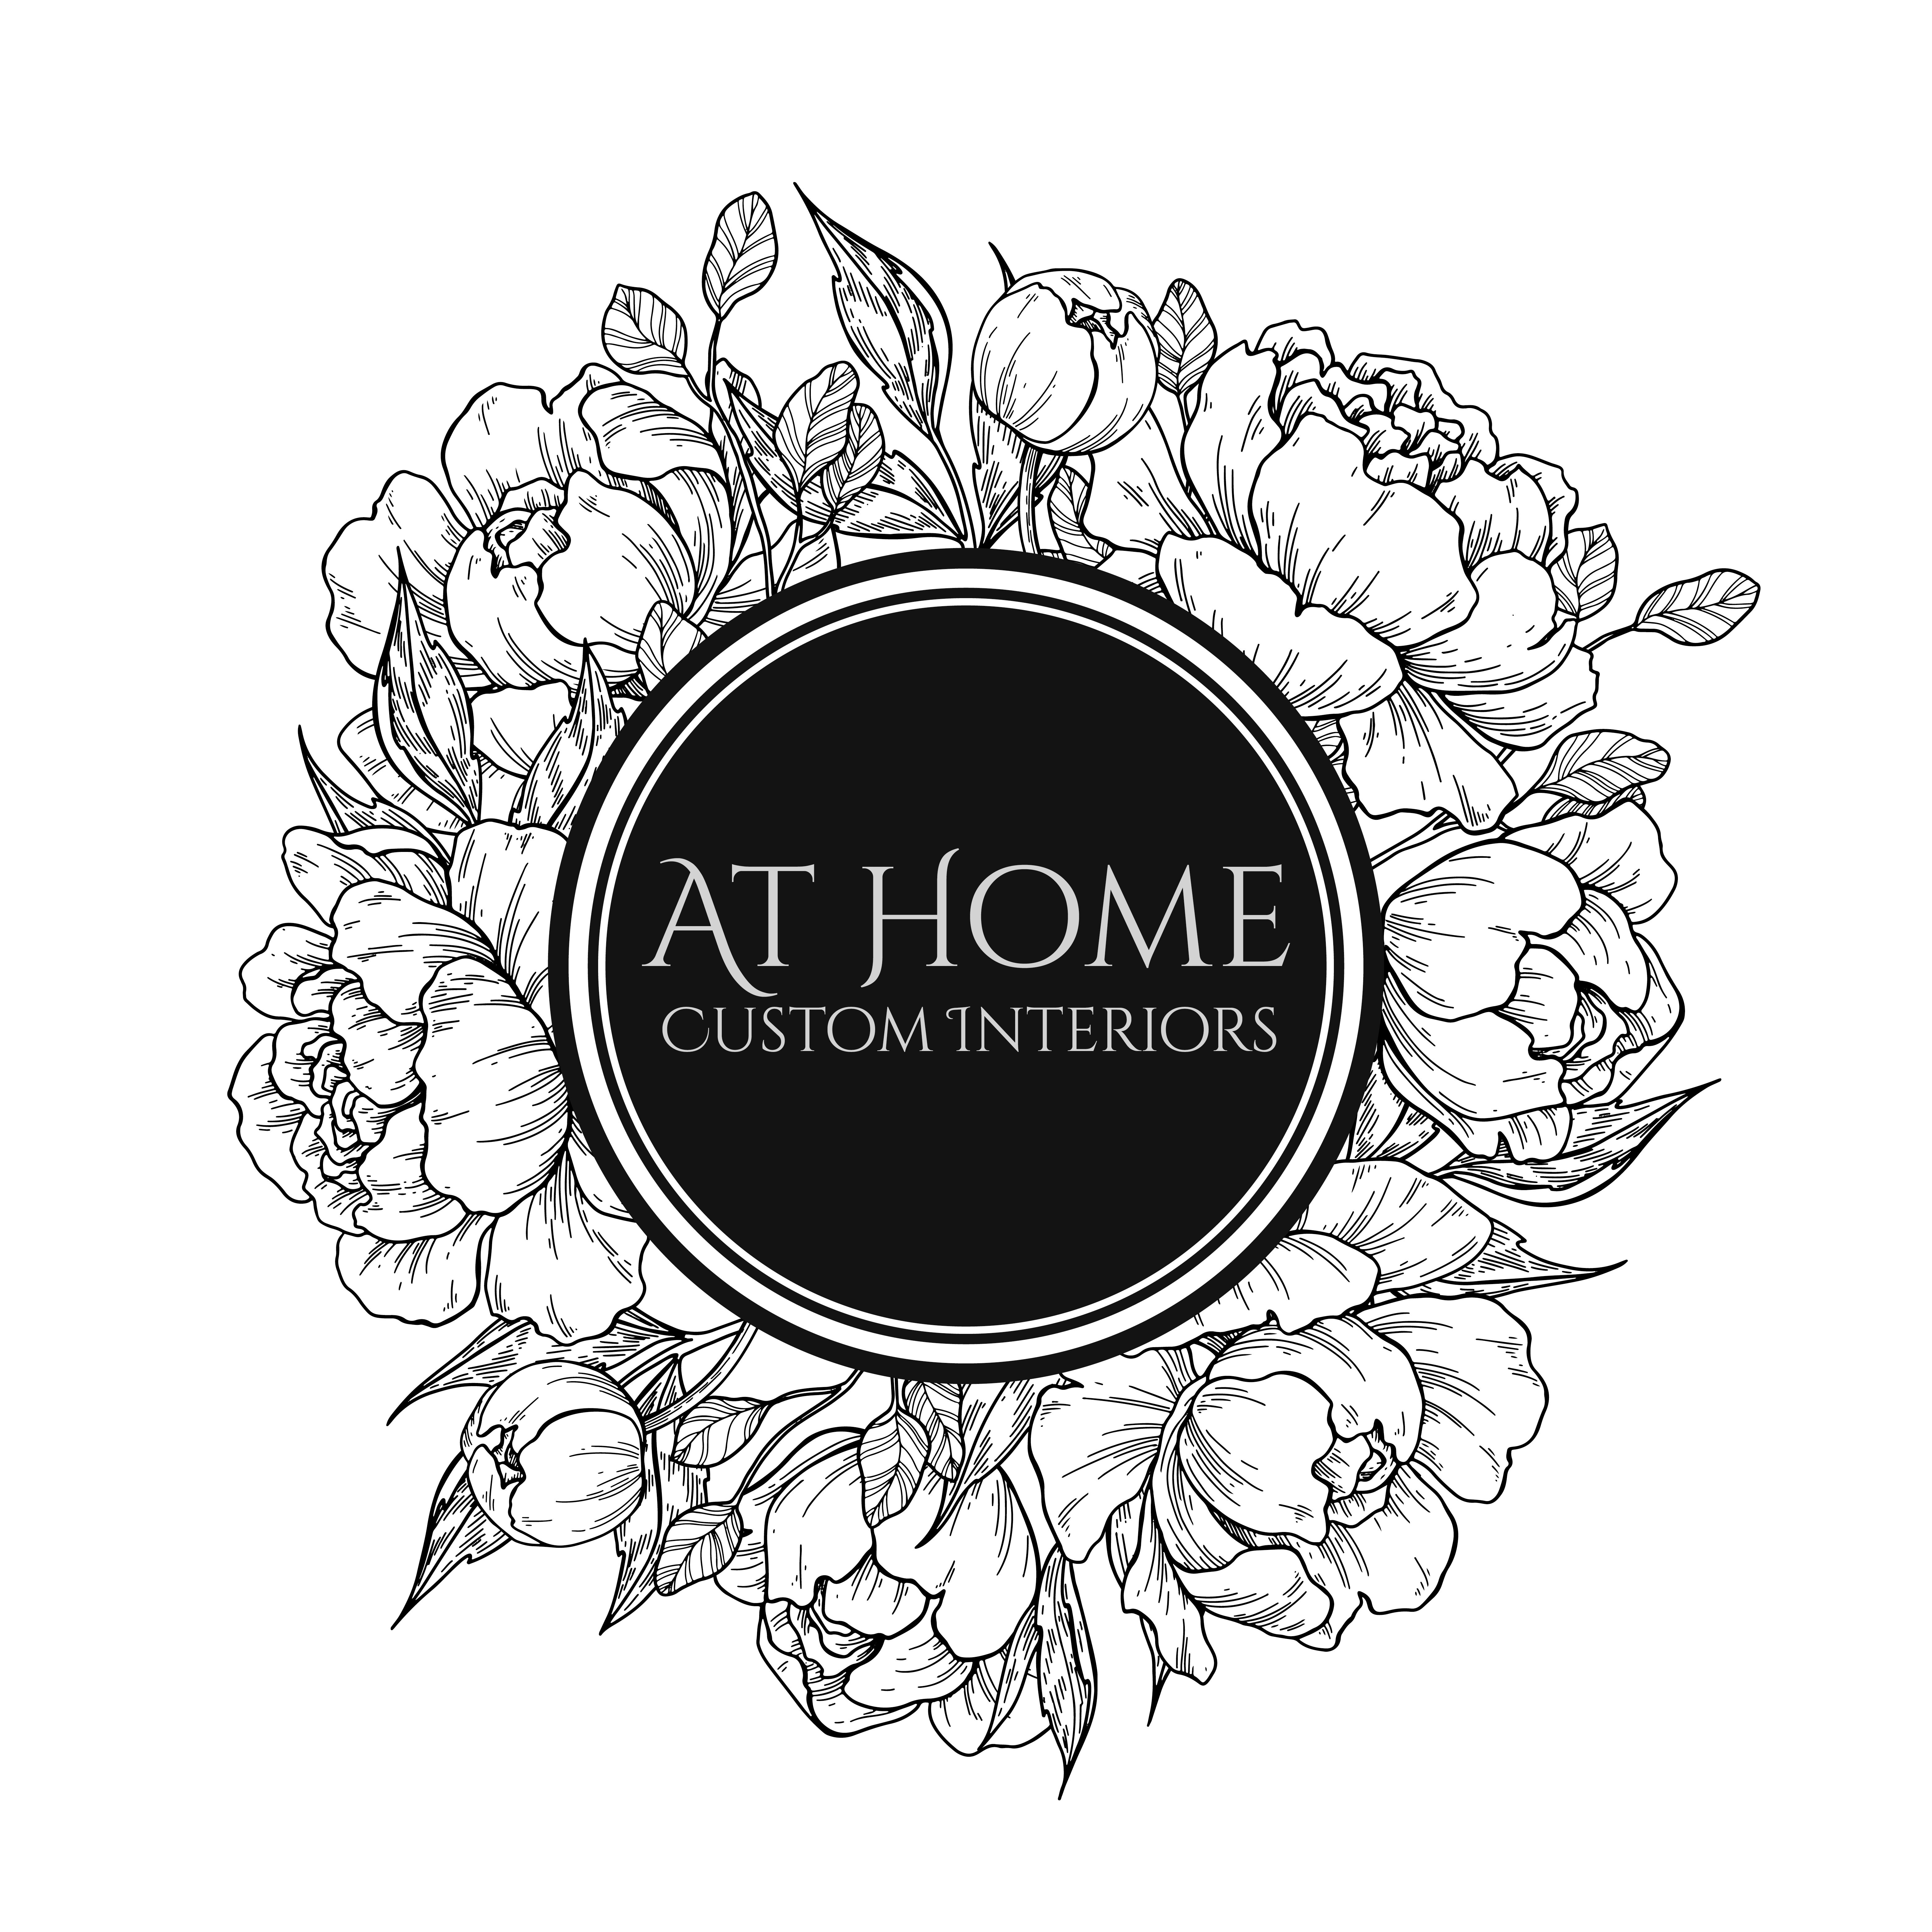 At Home Custom Interiors